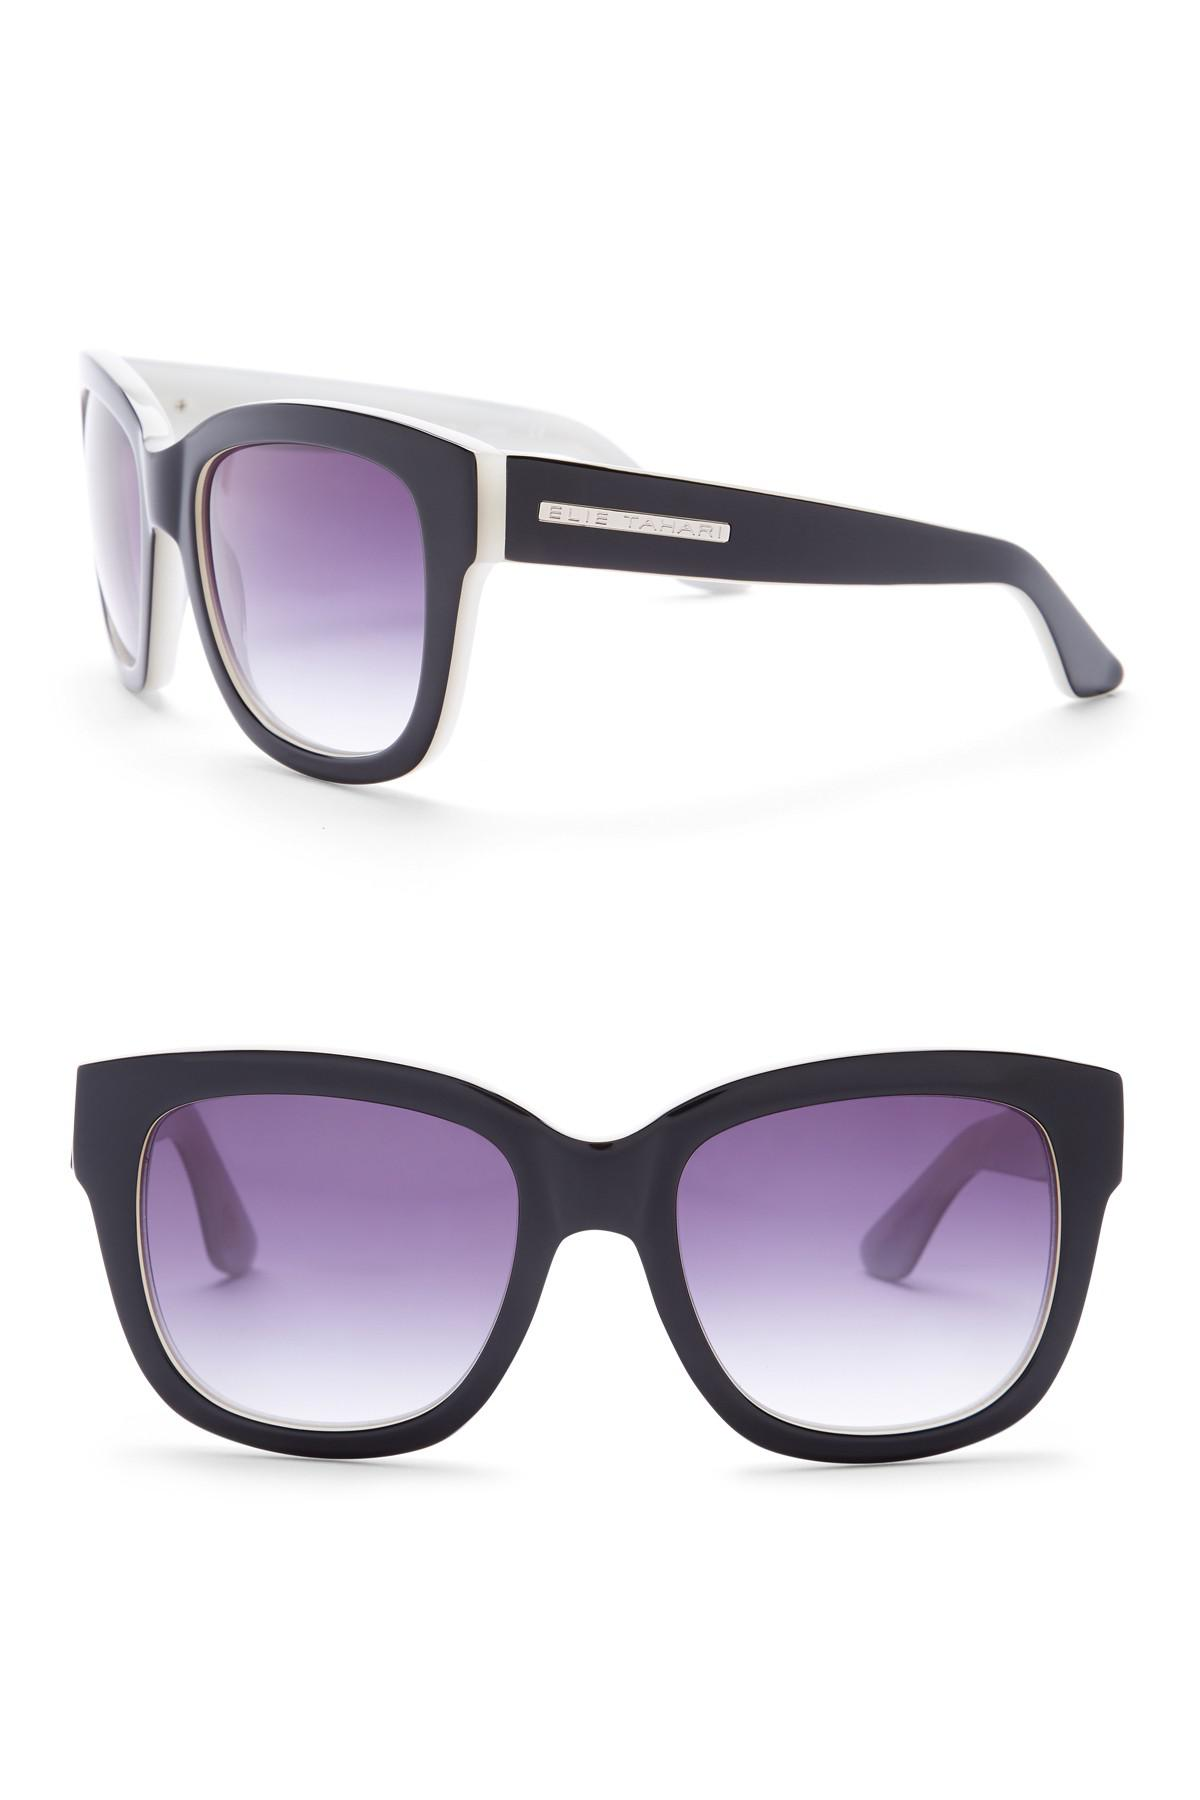 76867b3d8 Elie Tahari Women's 53mm Square Glam Sunglasses in Purple - Lyst